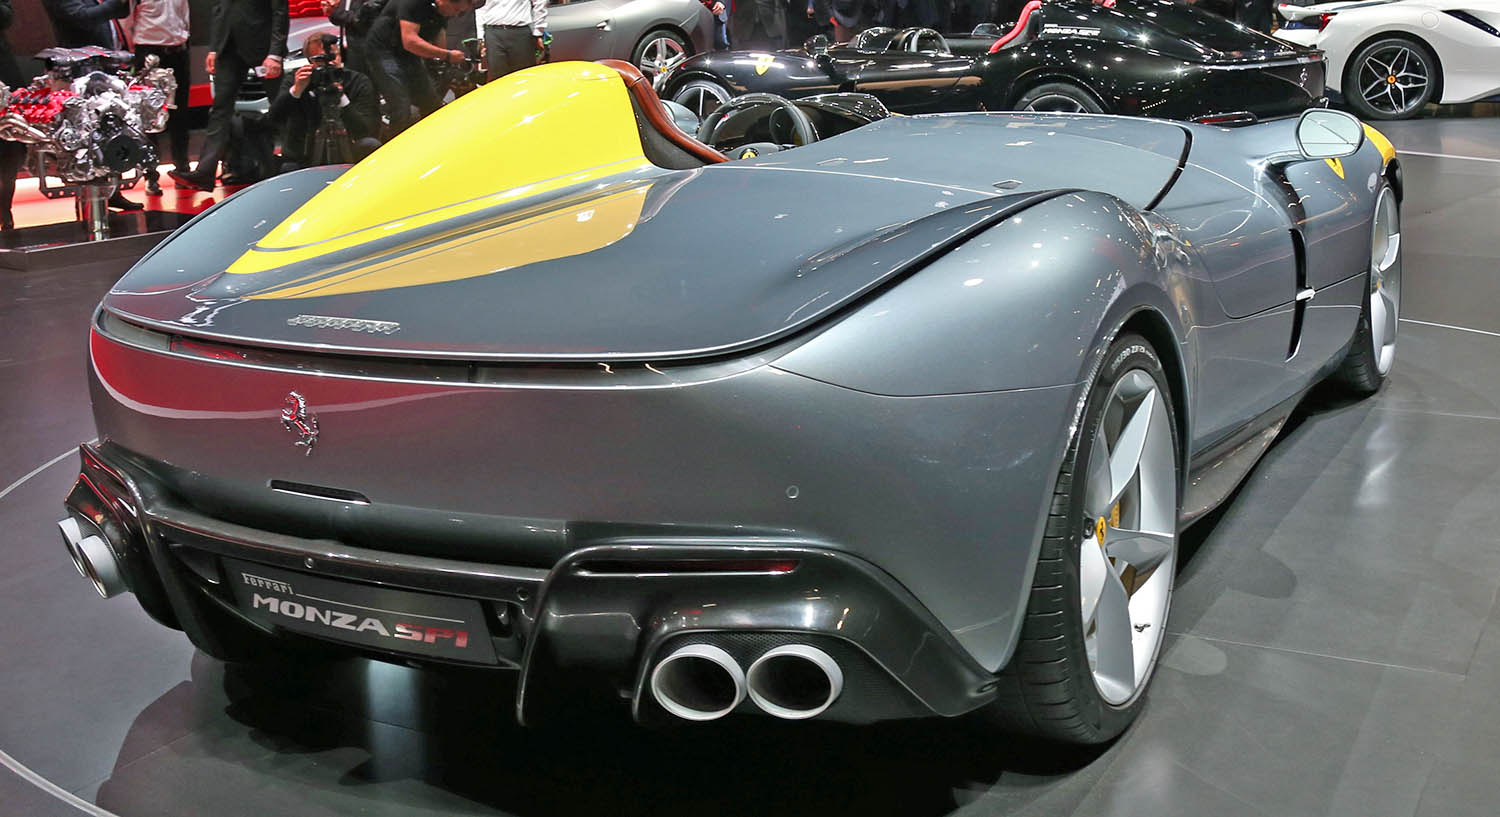 180989-car-ferrari-motor-show-paris | موقع ويلز